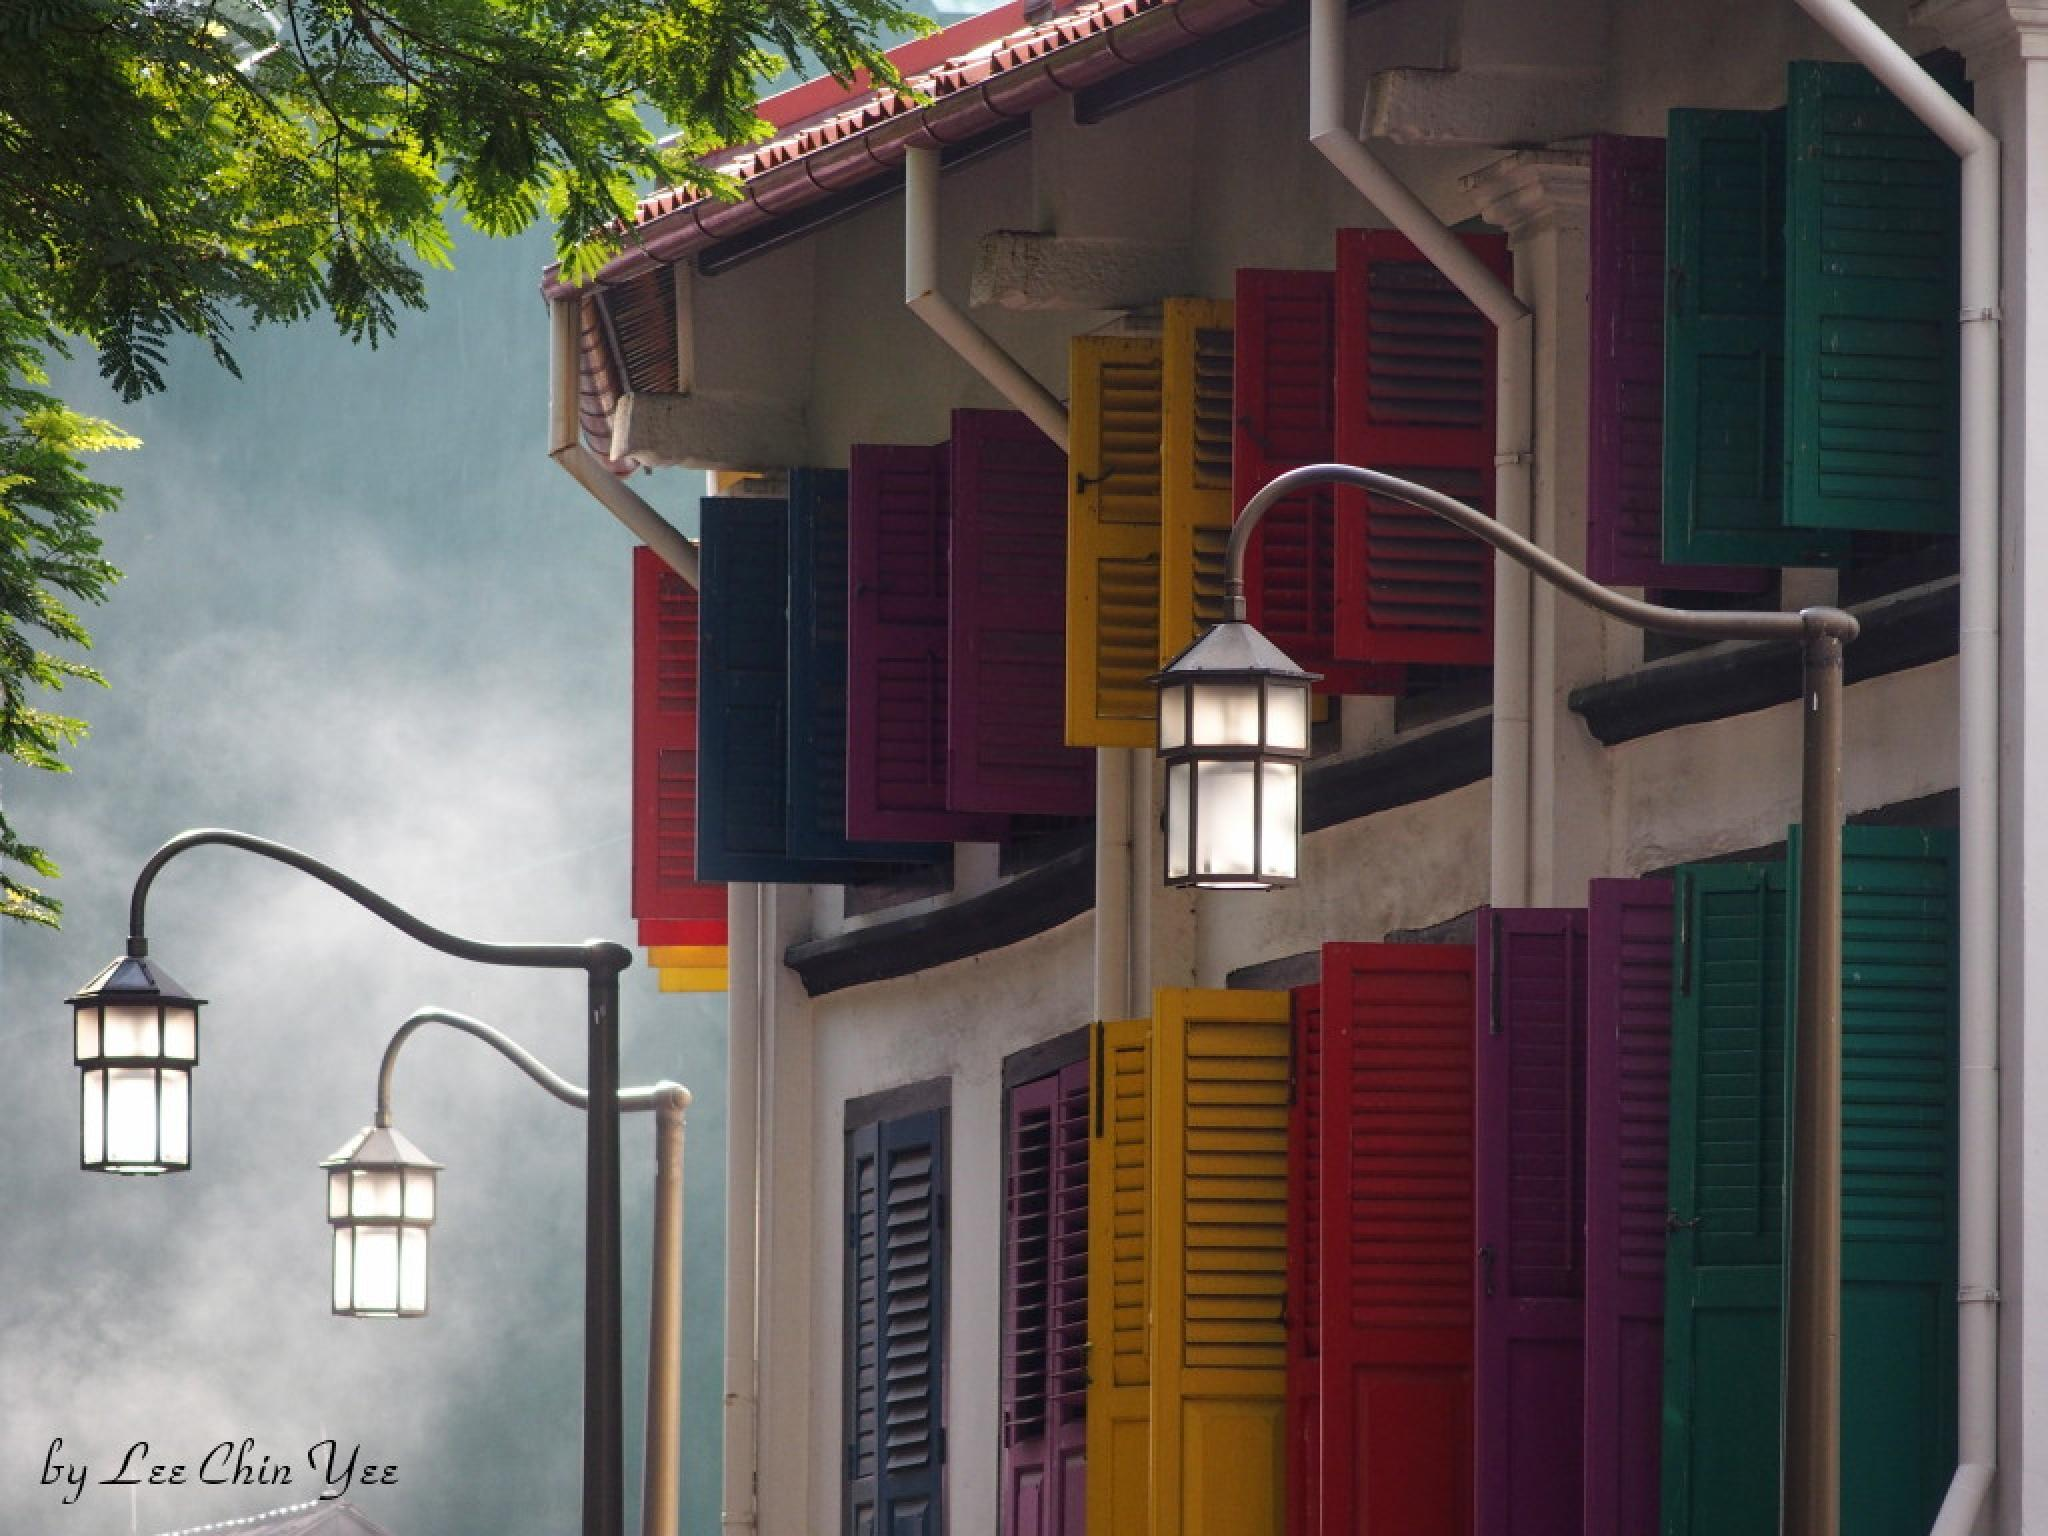 Amoy Street by Chinyee